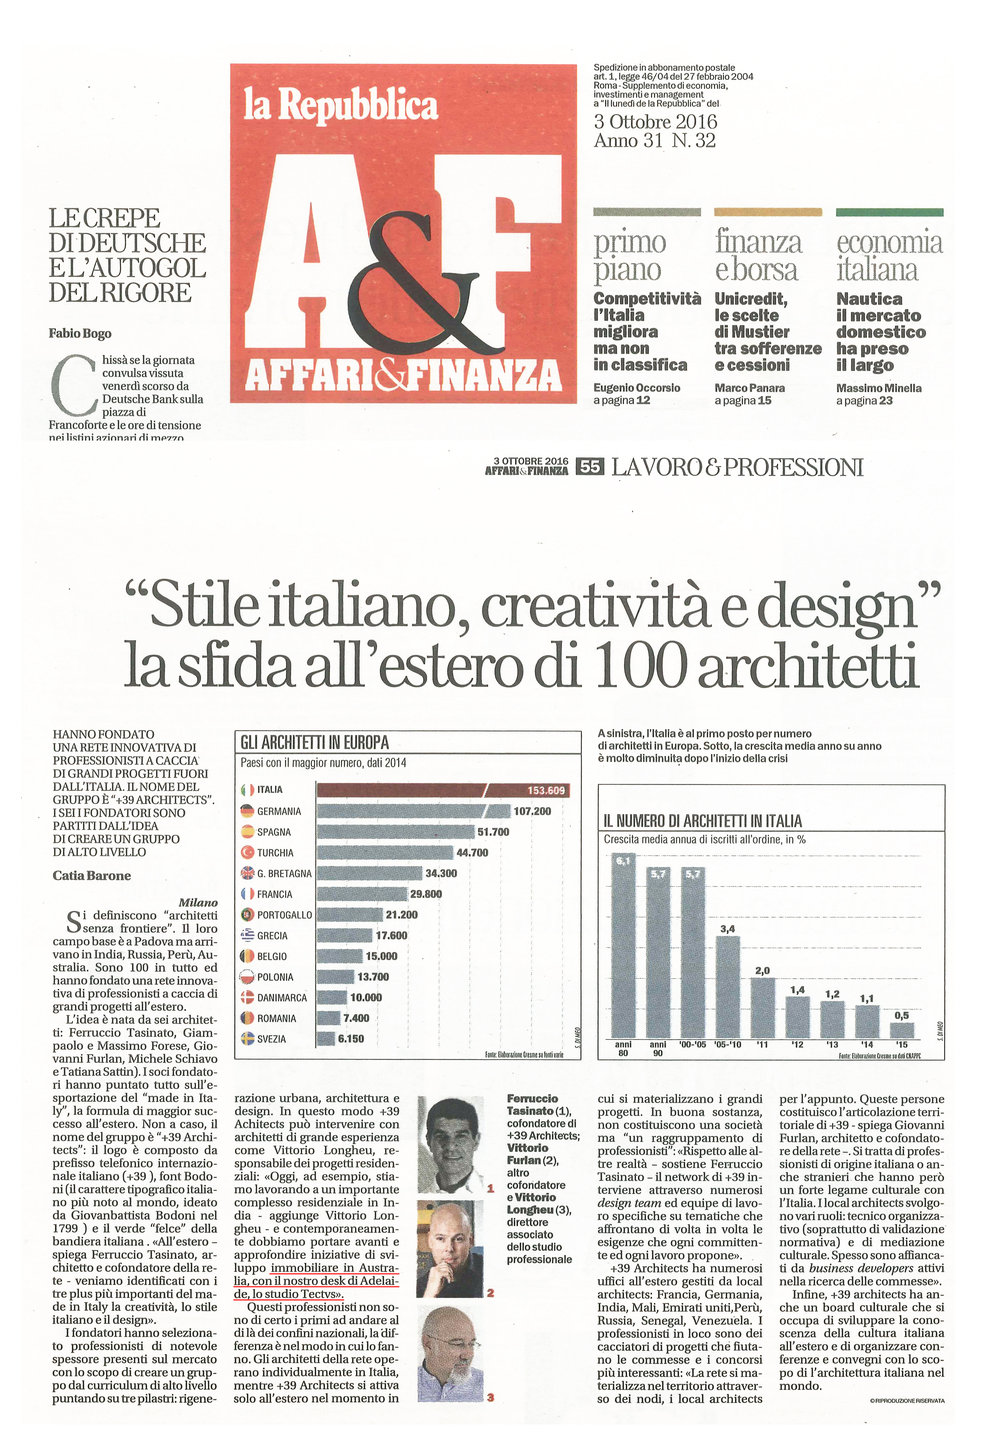 The announcement of Tectvs as the Australian desk of +39 was recently featured in la Repubblica